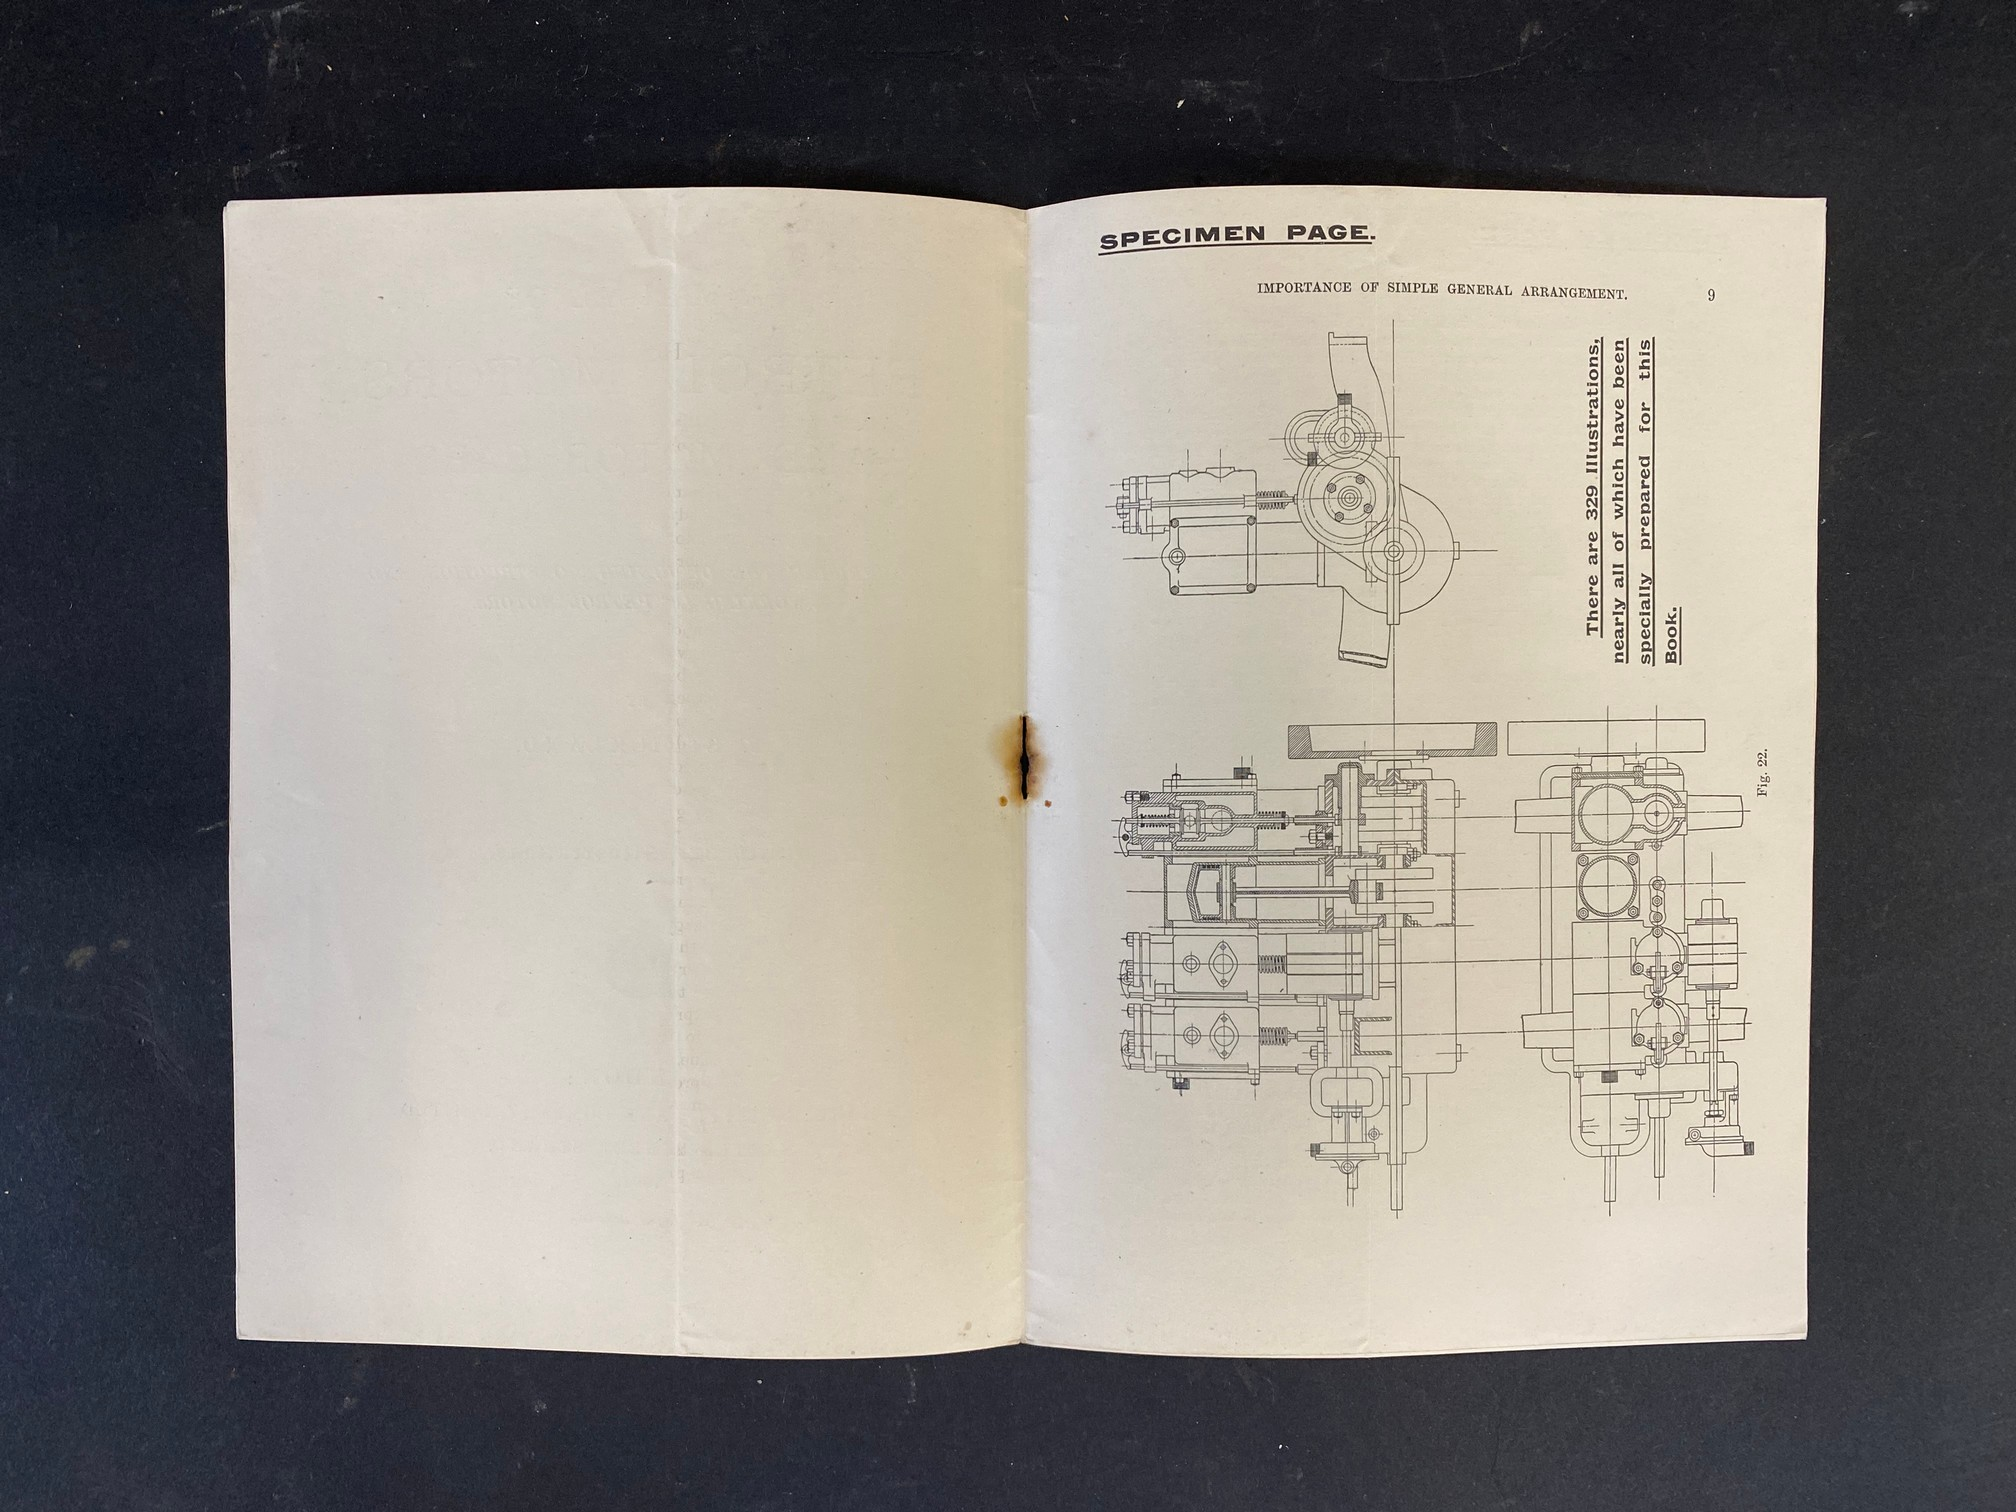 A 1907 Manual of Petrol Motors and Motor Cars by F. Strickland. - Image 3 of 4